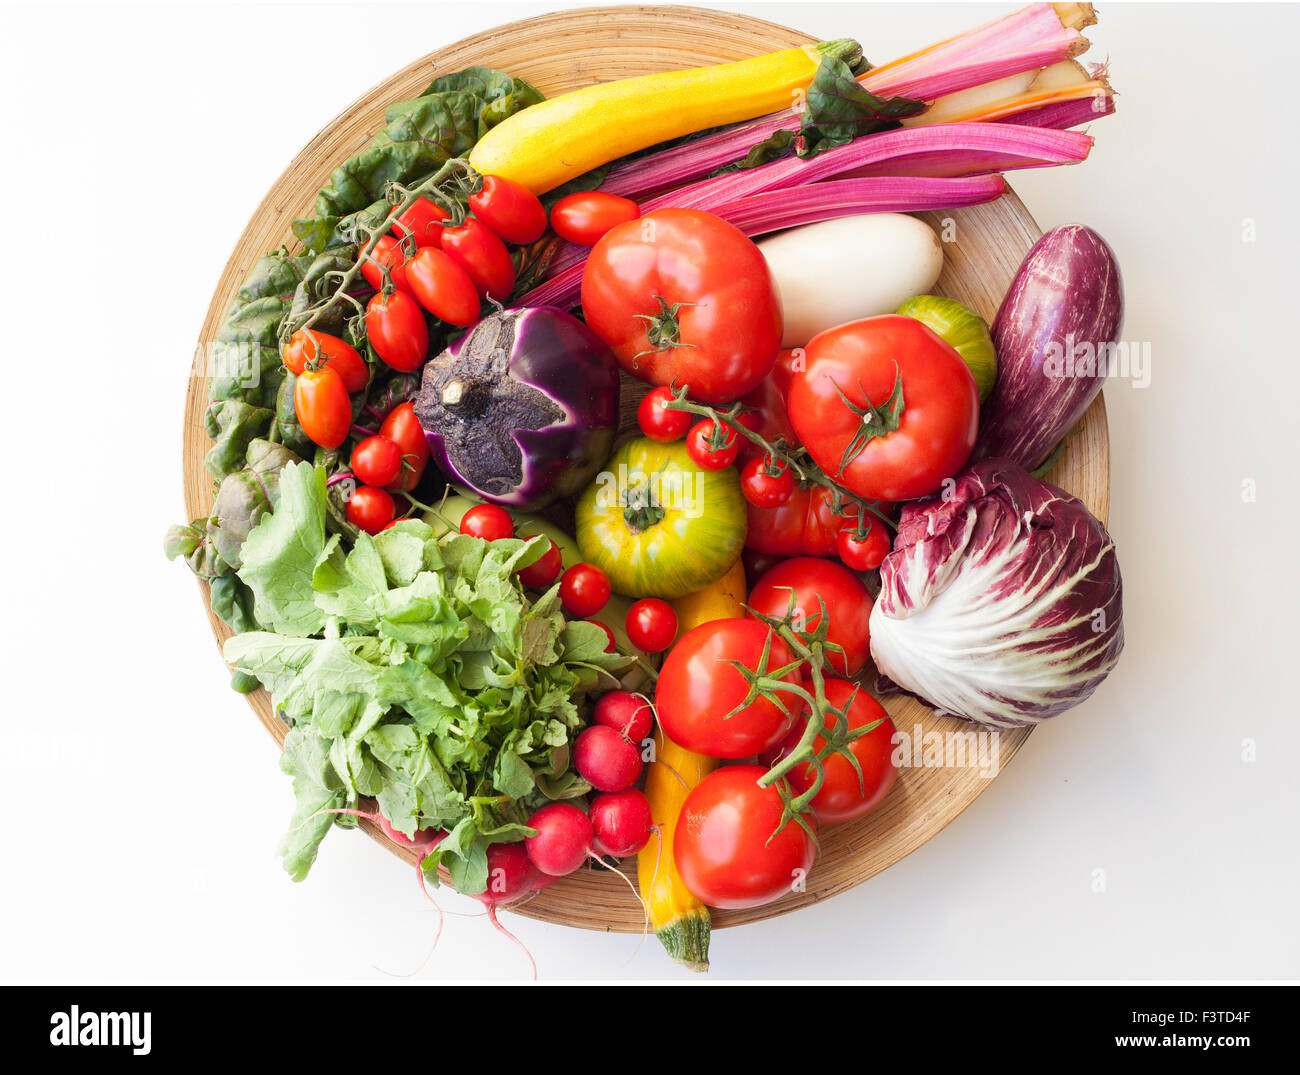 A variety of vegetables on plate, still life, London 2015. - Stock Image